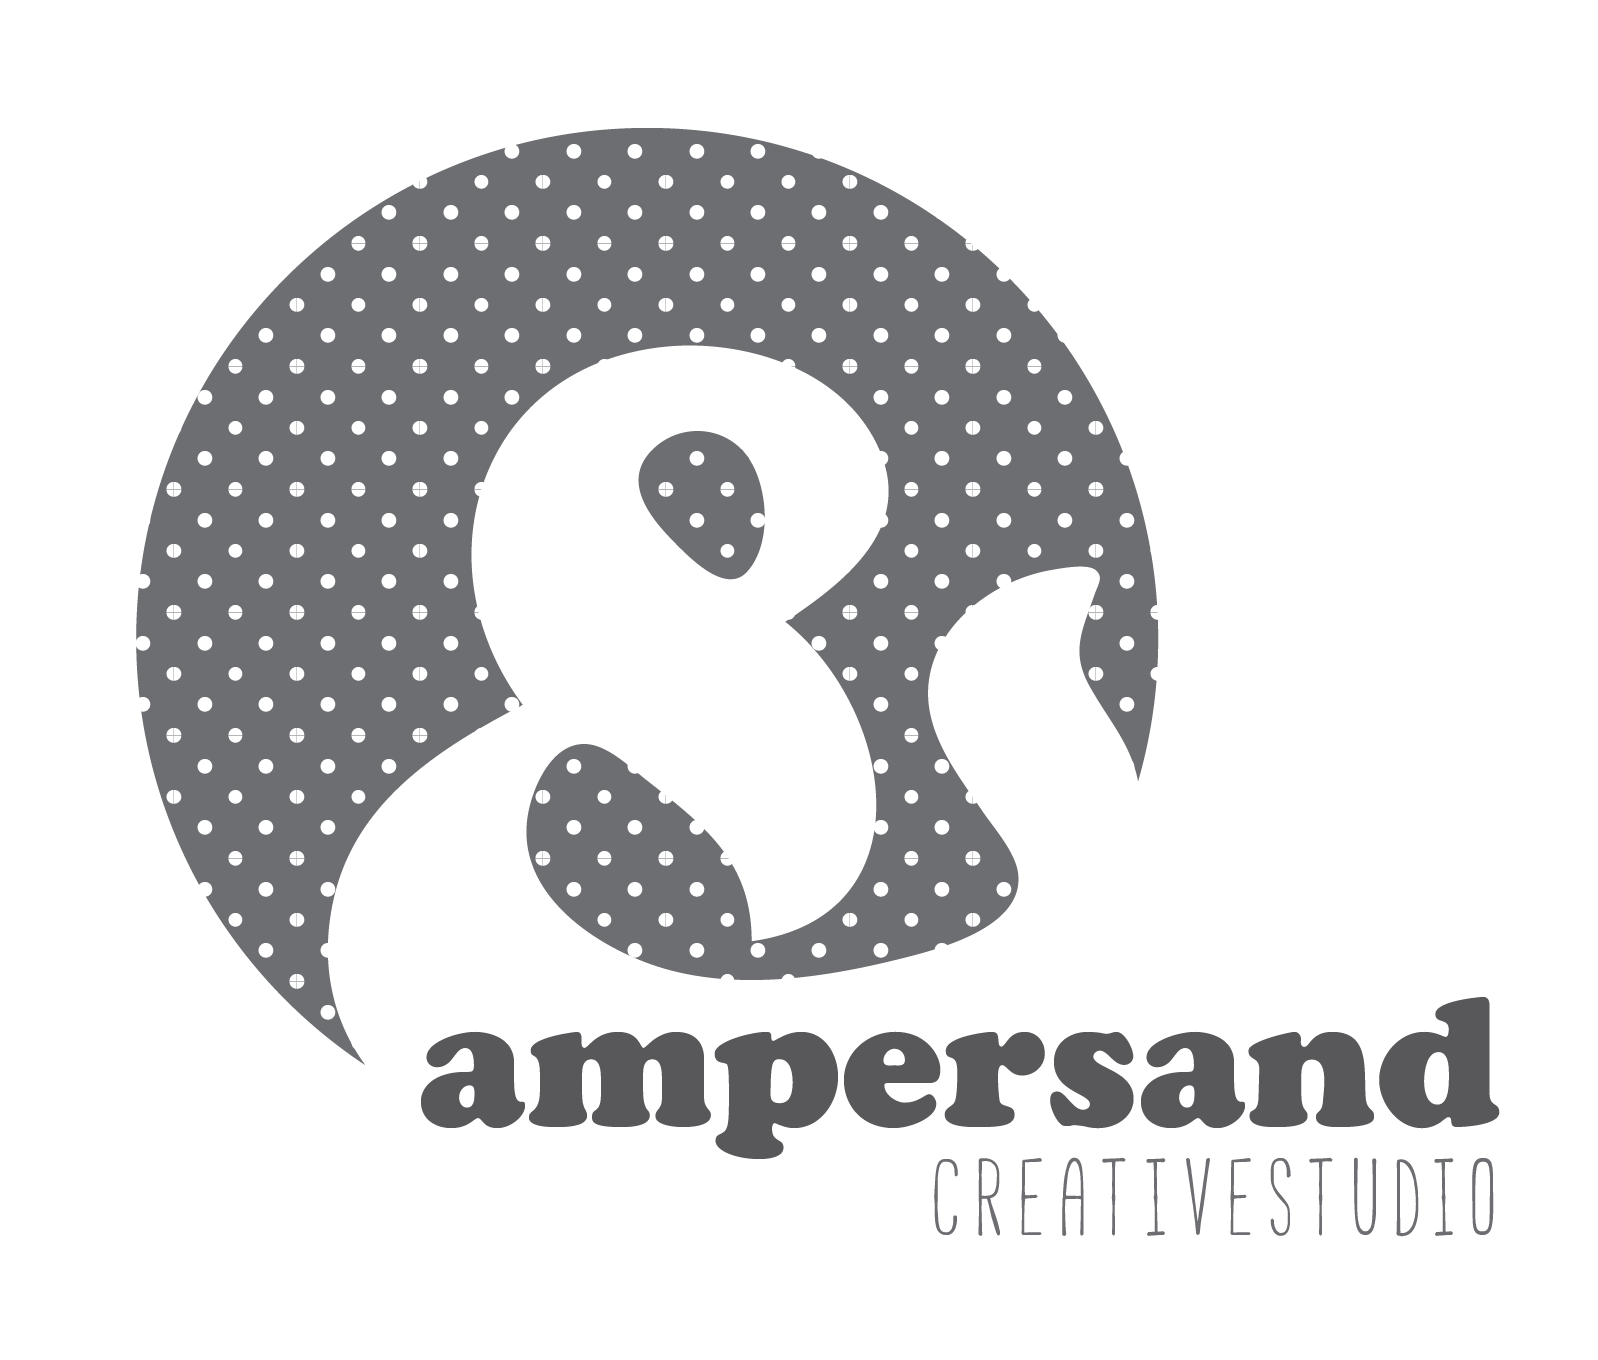 Ampersand - Creative Studio